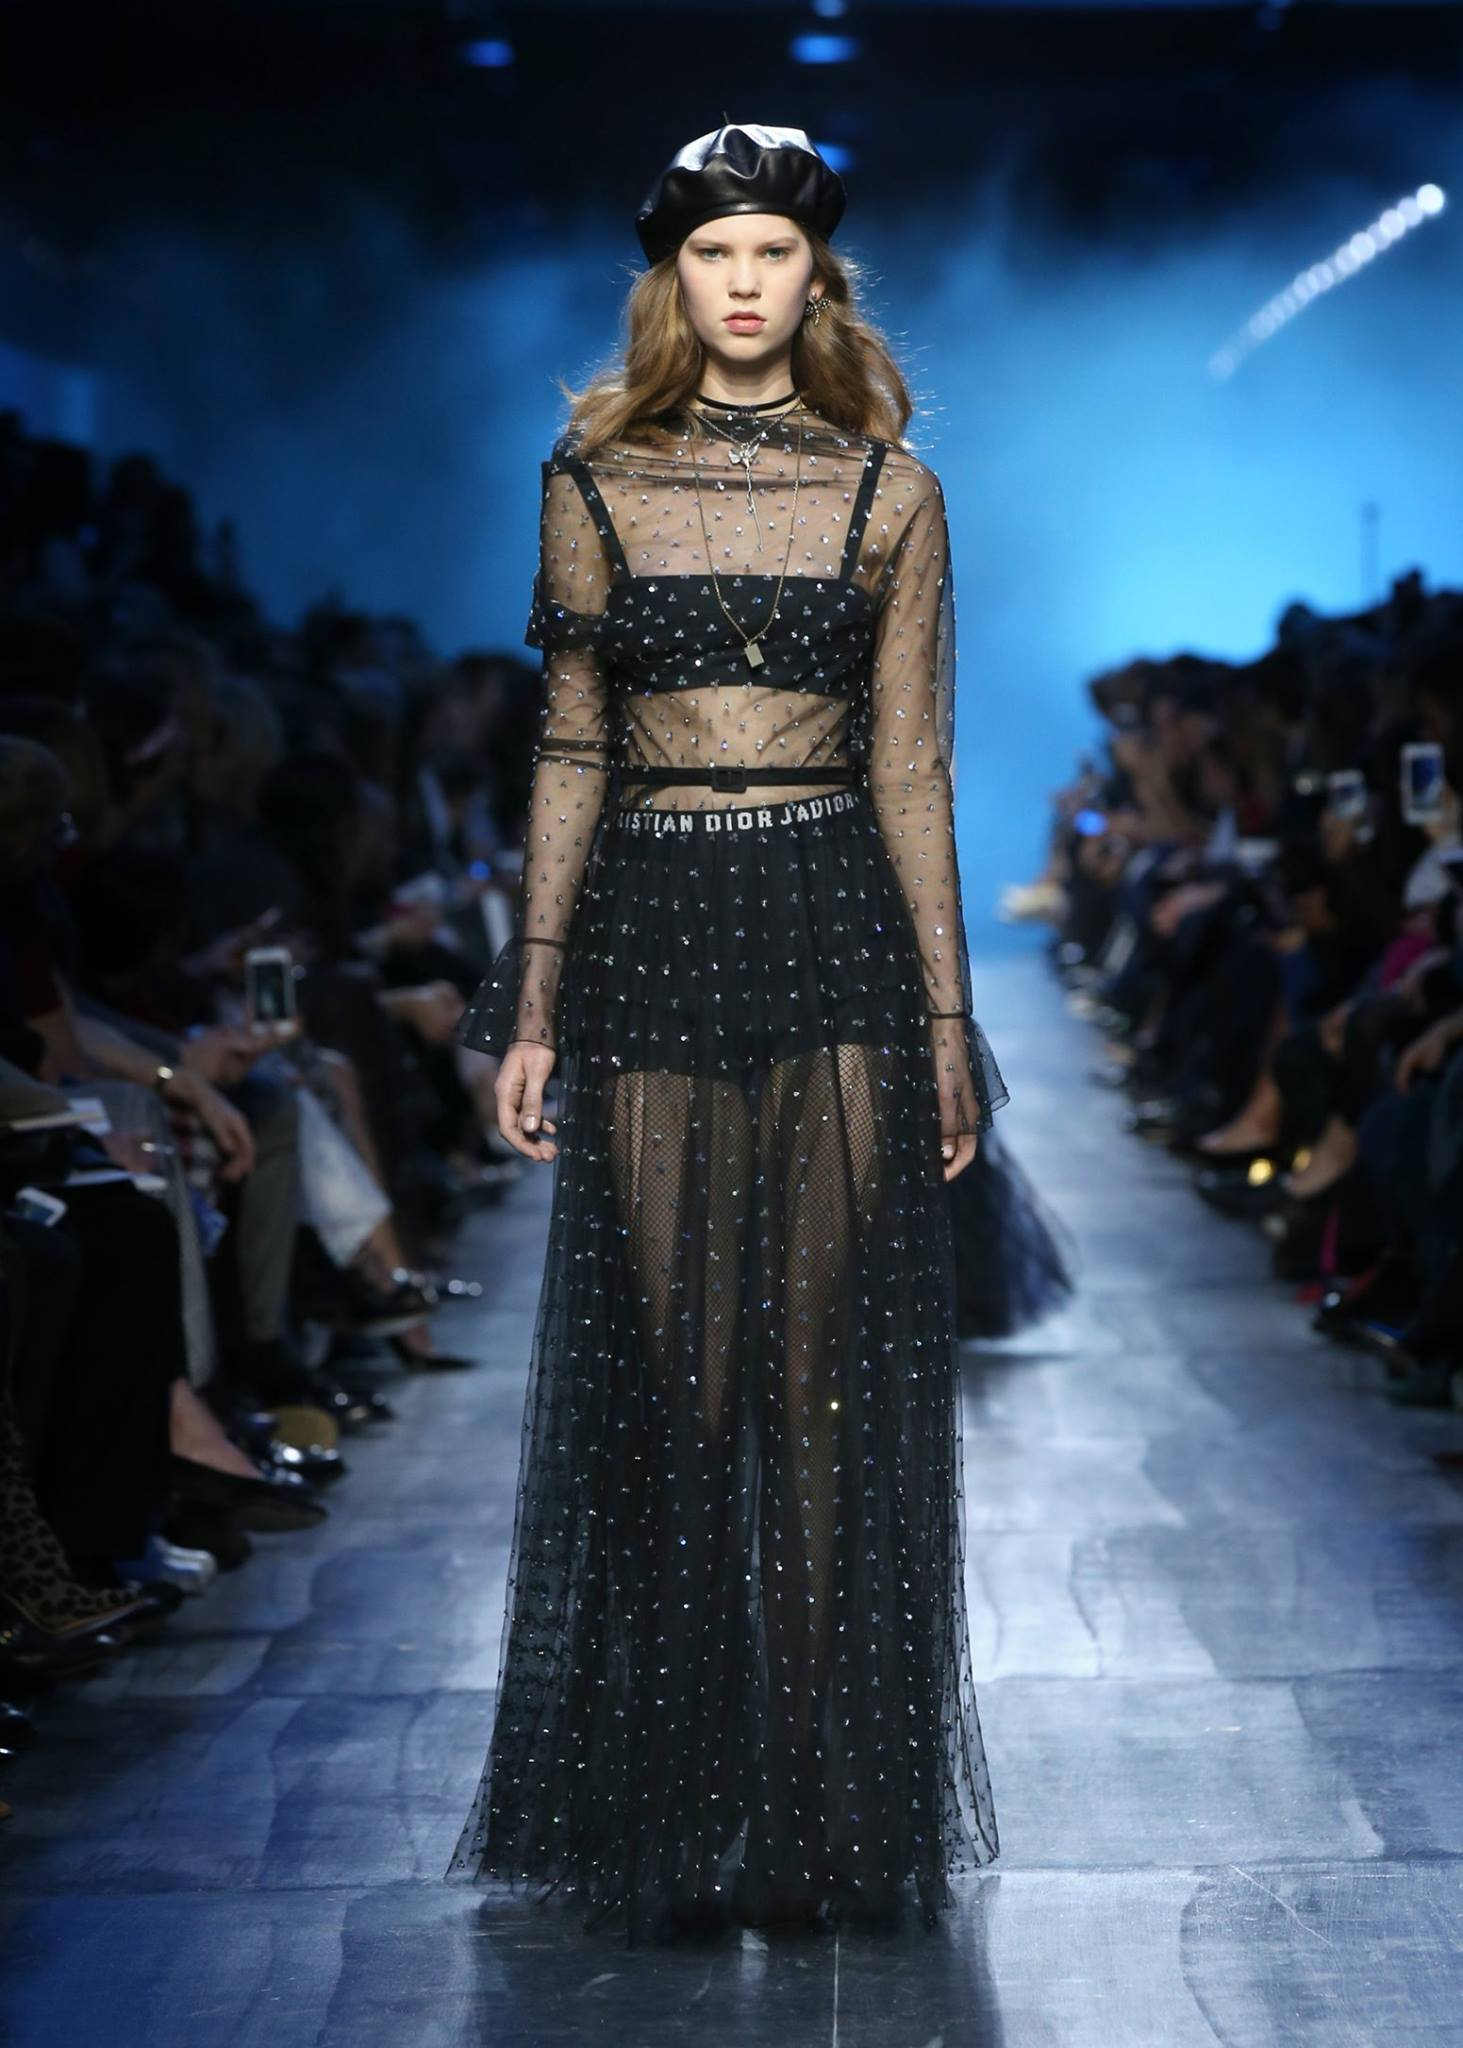 Le Meilleur Dior Autumn Winter 2017 18 Ready To Wear Fashion Show Ce Mois Ci